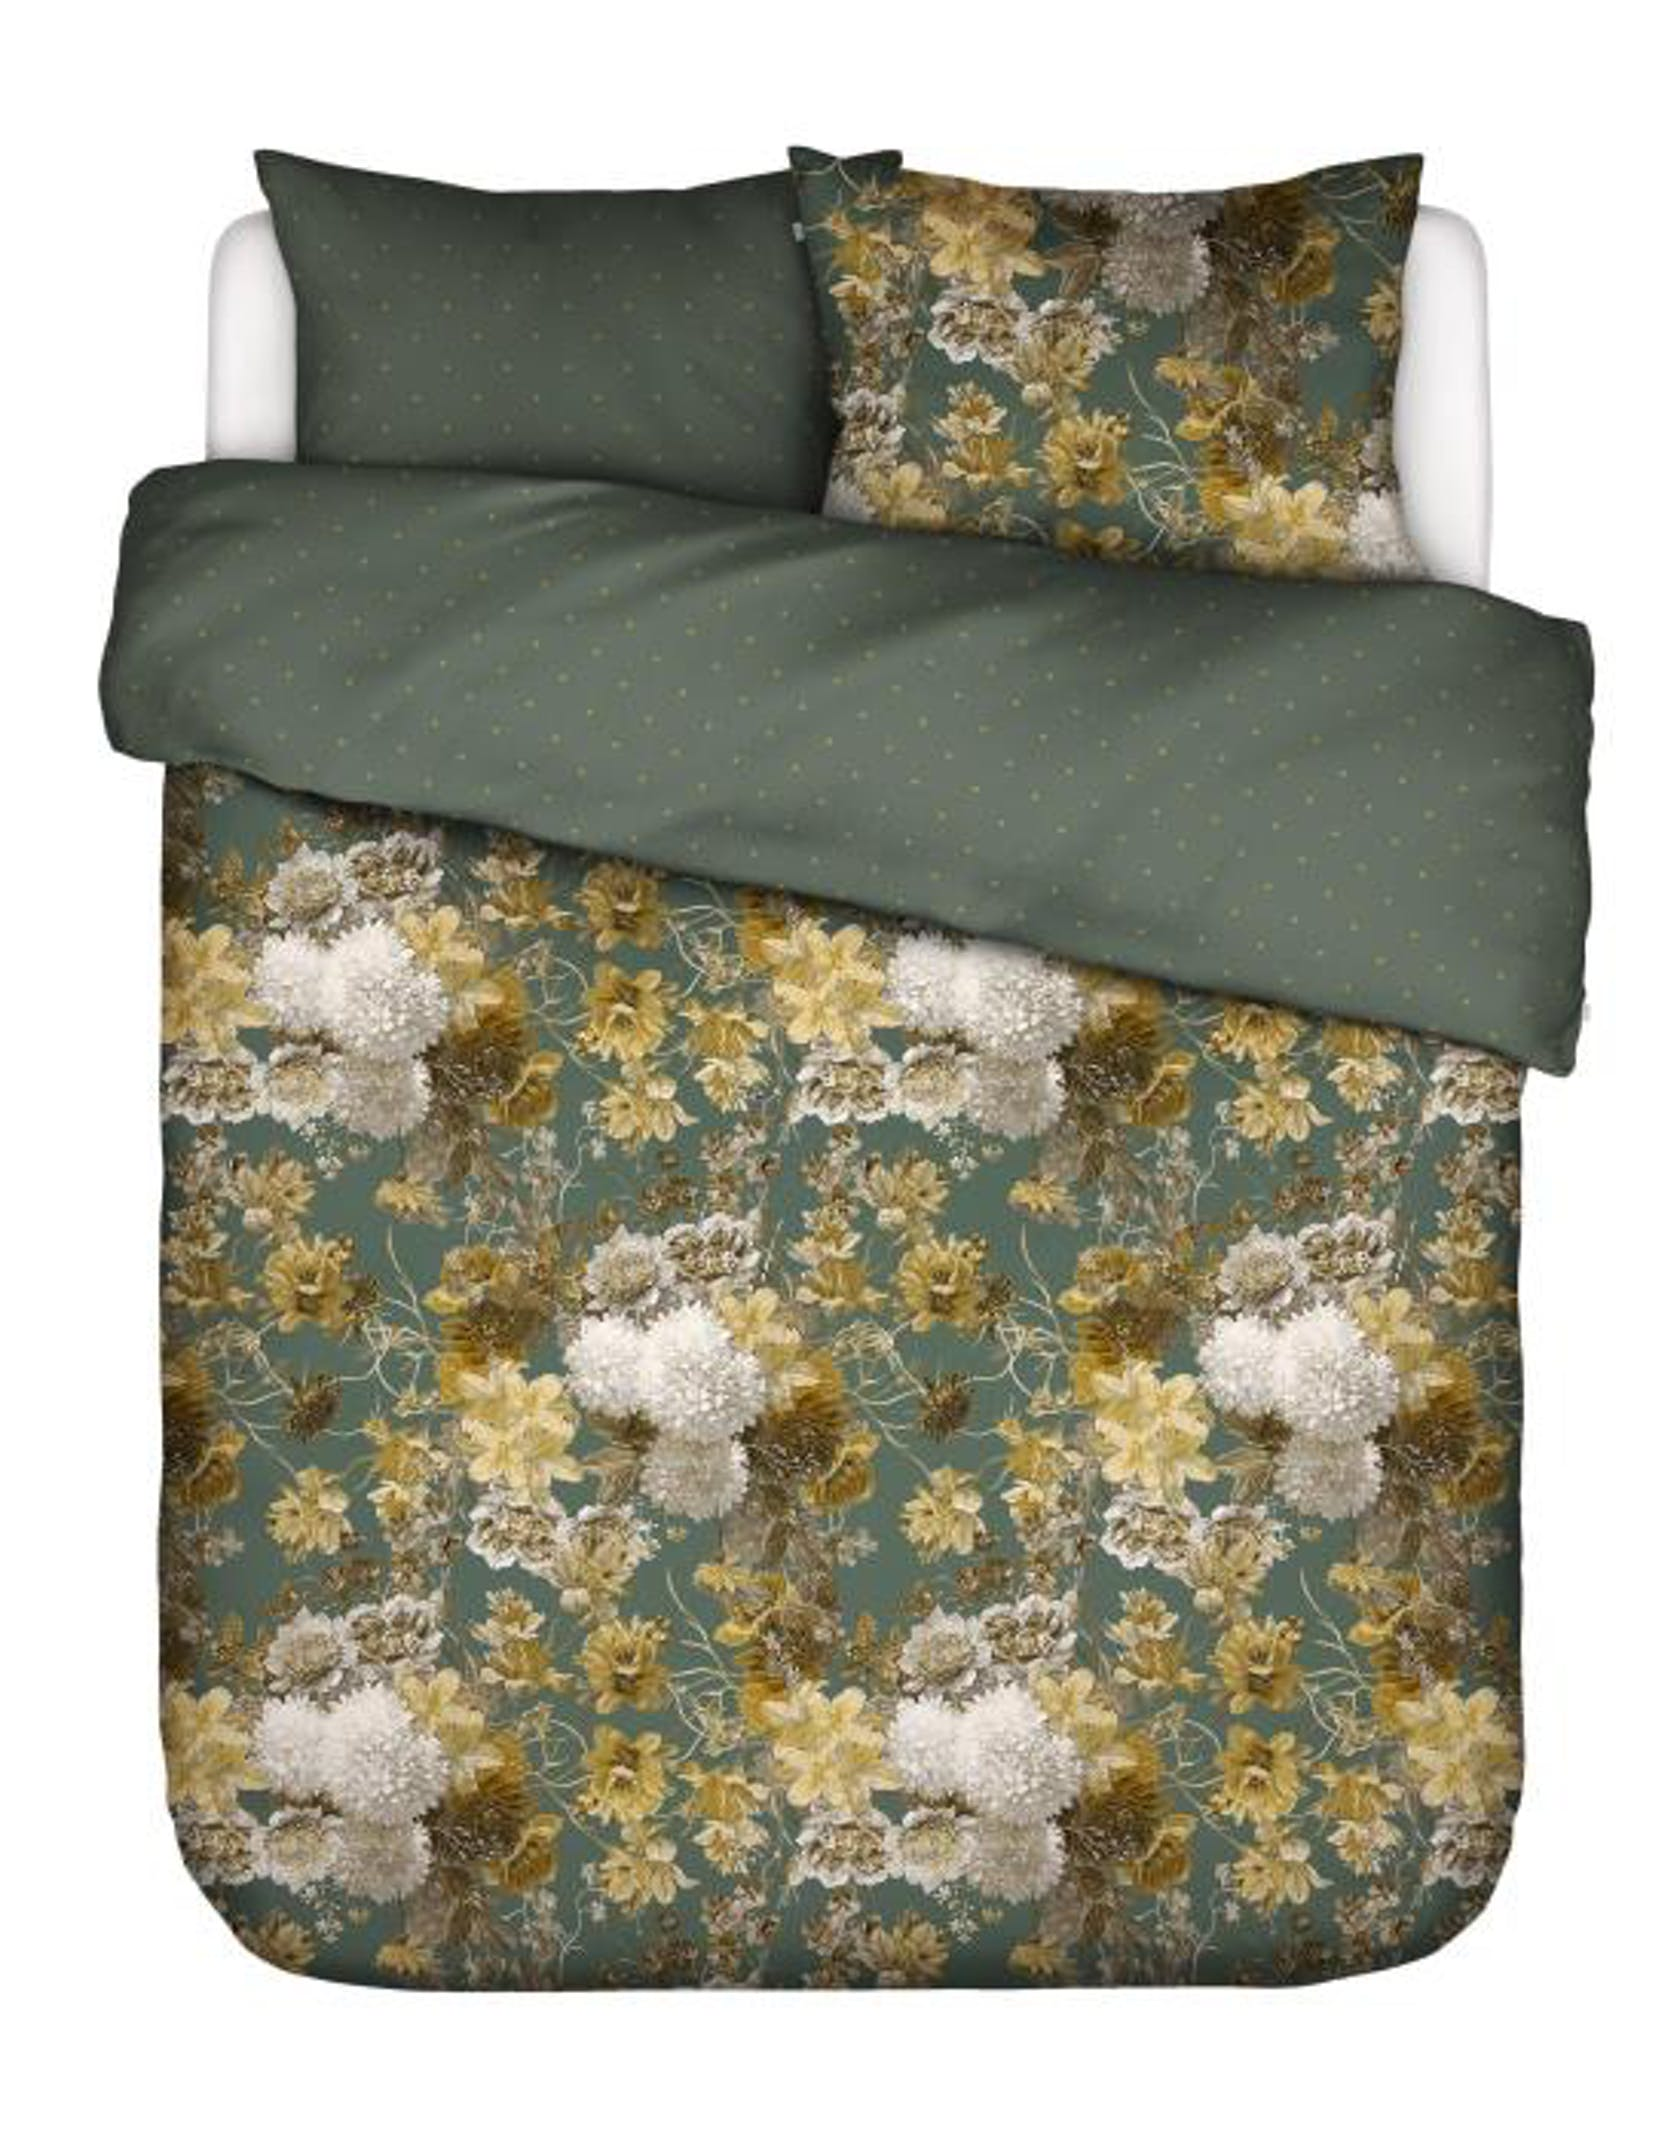 ESSENZA Maily Laurel Green Duvet cover 260 x 220